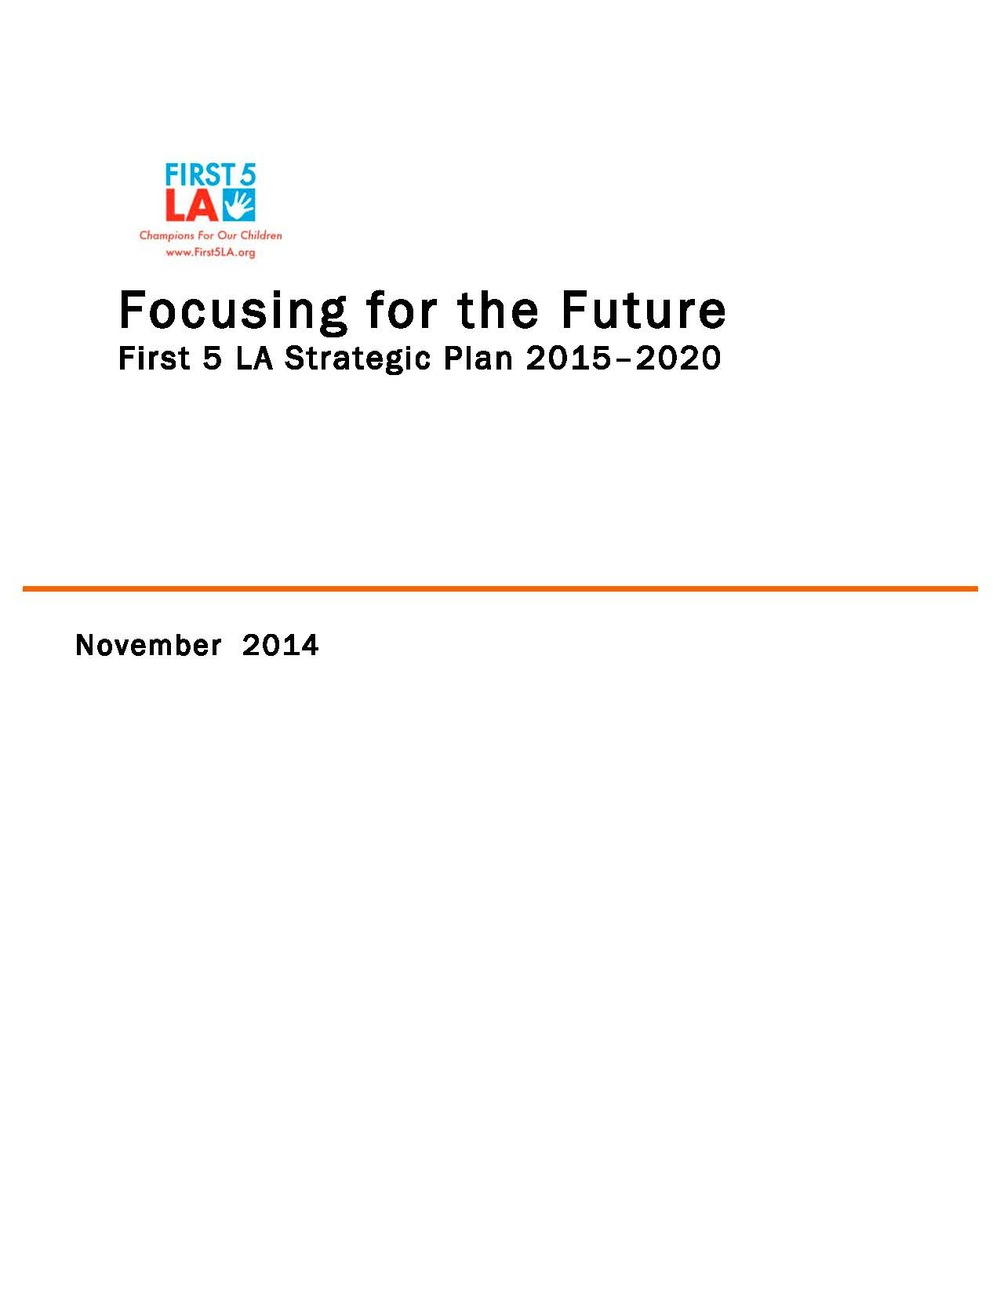 Check out the final product: First 5 LA 2015-2020 Strategic Plan